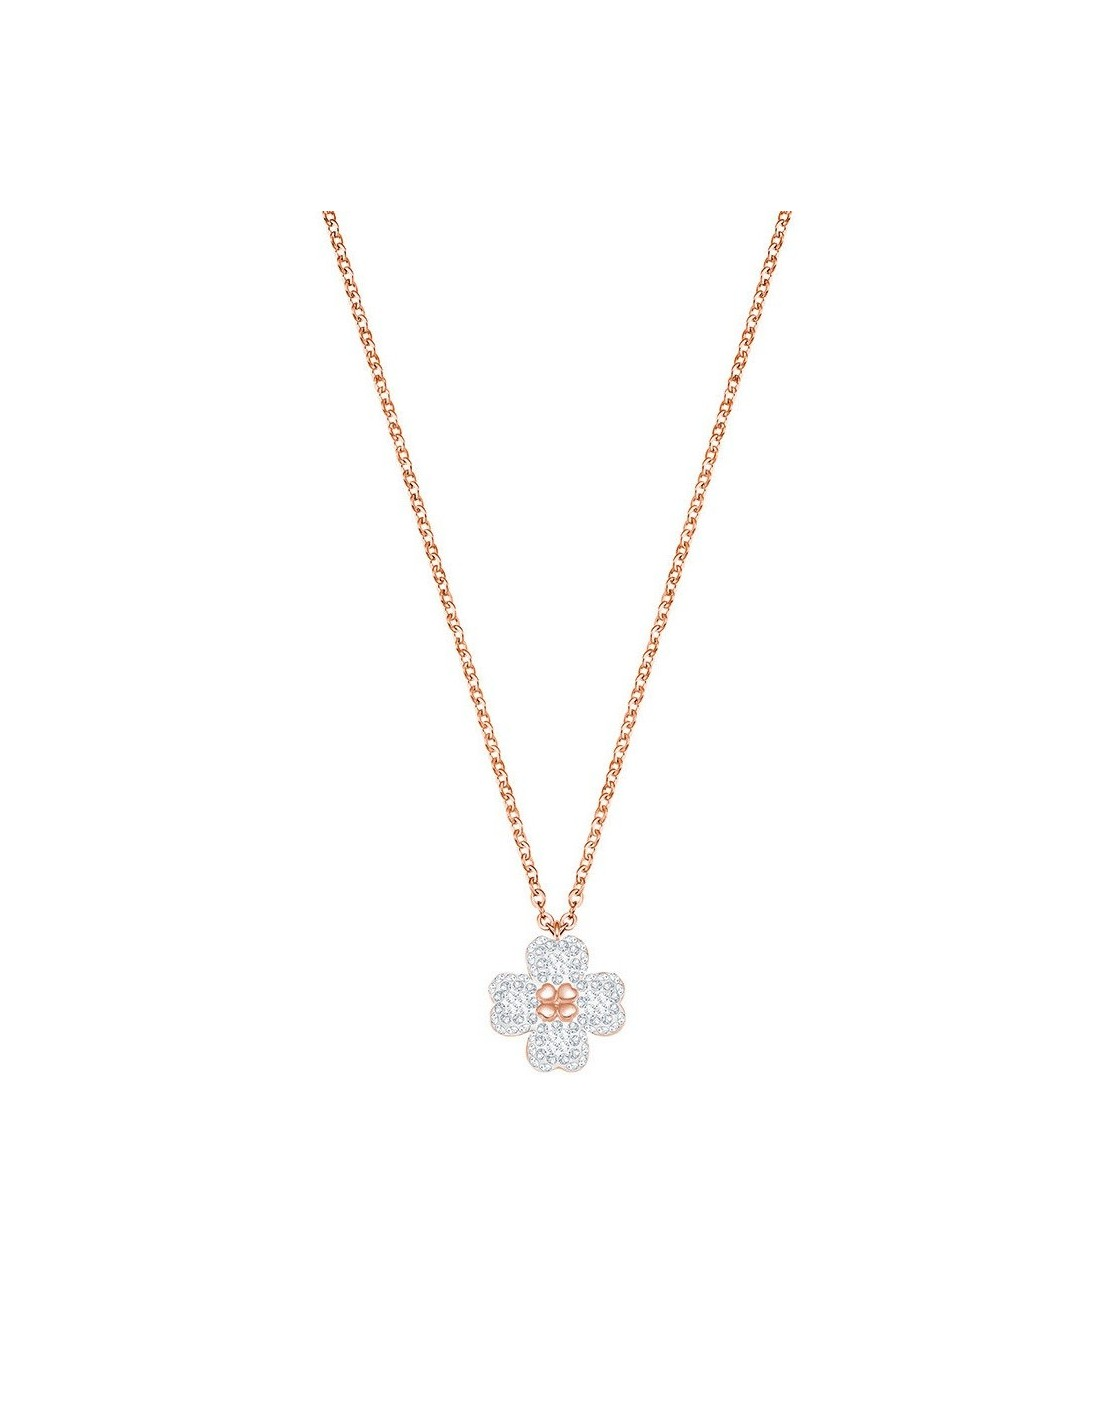 493ef19c7 ... Necklace Latisha Flower swarovski jewelry pendant rose gold plated  5420246. Previous